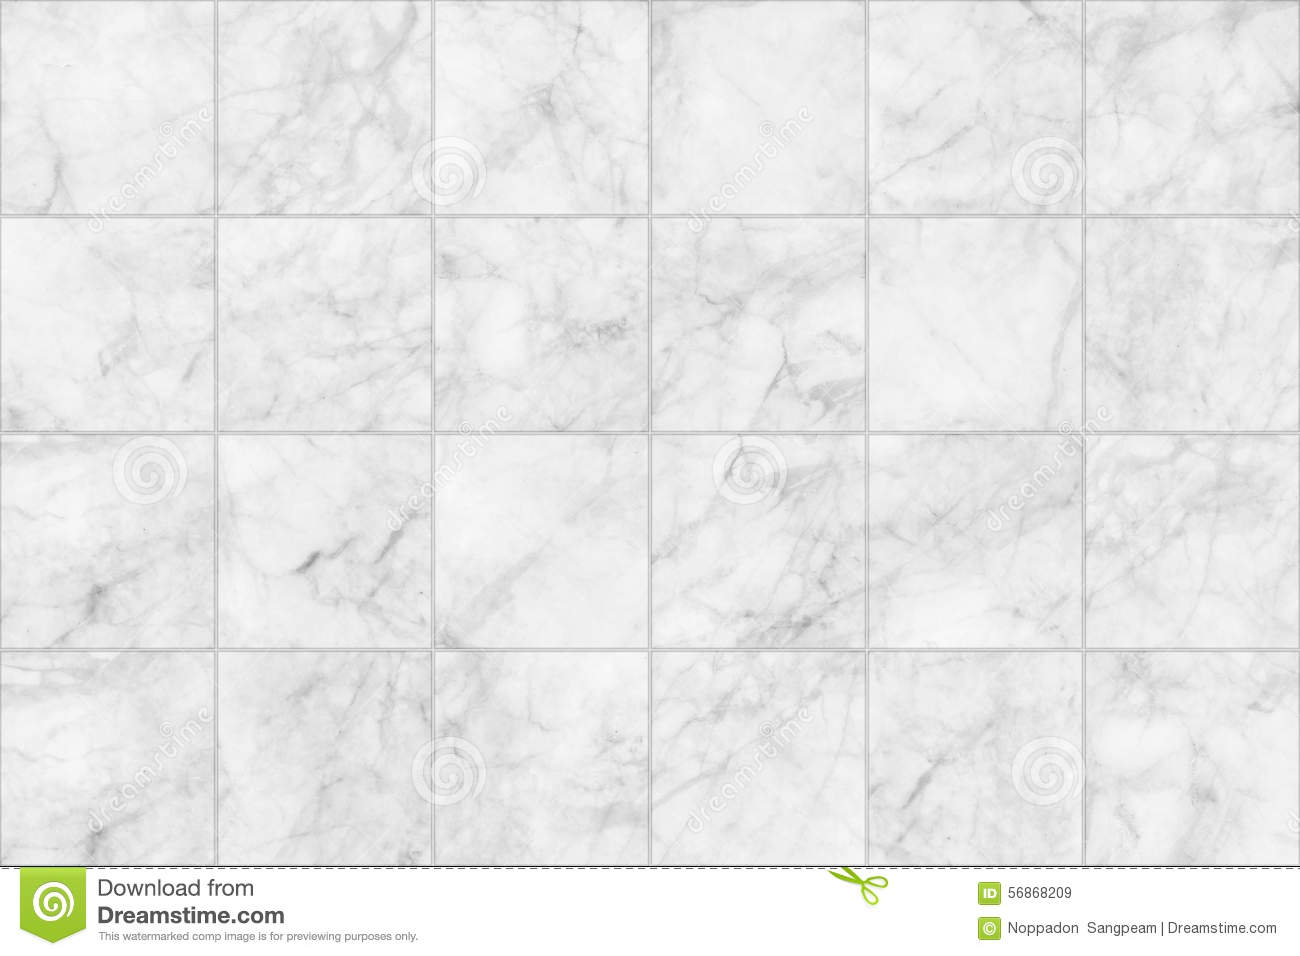 Marble Tiles Seamless Flooring Texture For Background And